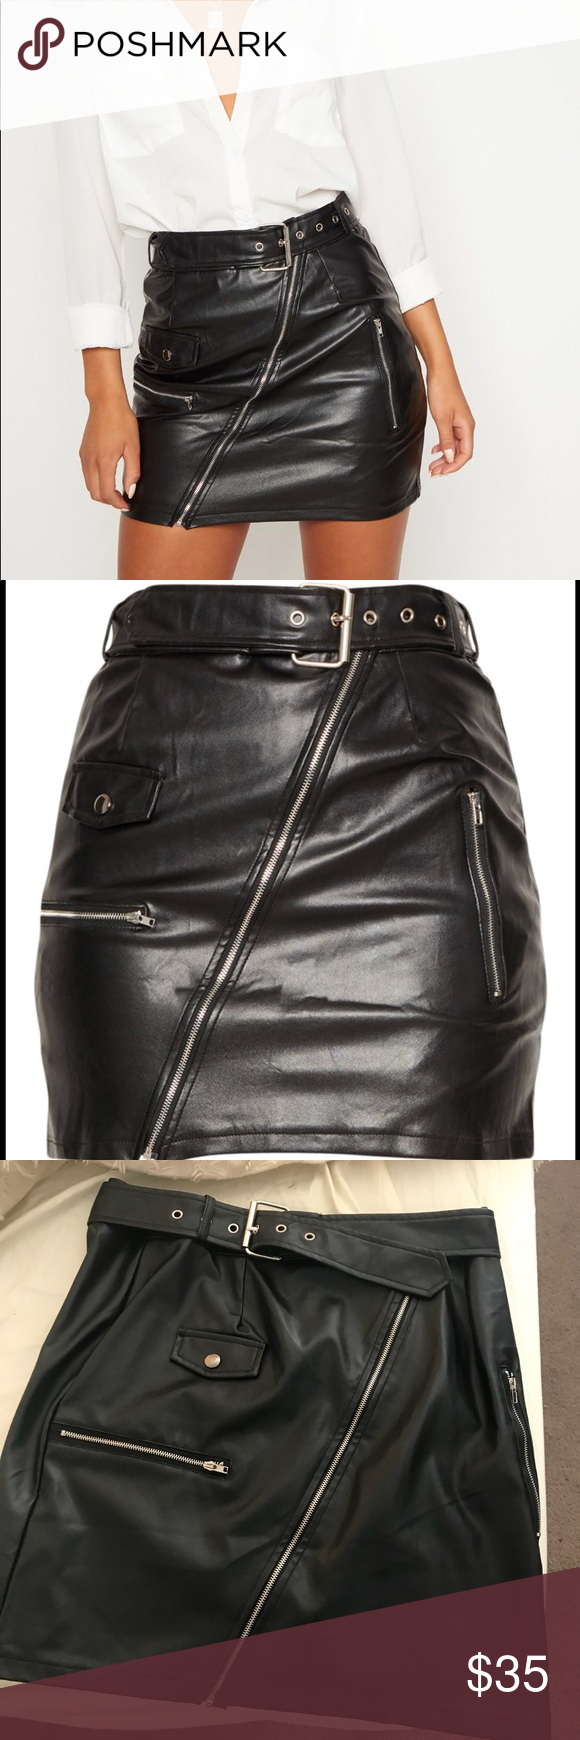 20964a858 Pretty Little Thing Black Faux Leather Mini Skirt Pretty Little Thing Black  Faux Leather Biker Belted Mini Skirt. Missing tags but has never been worn  ...